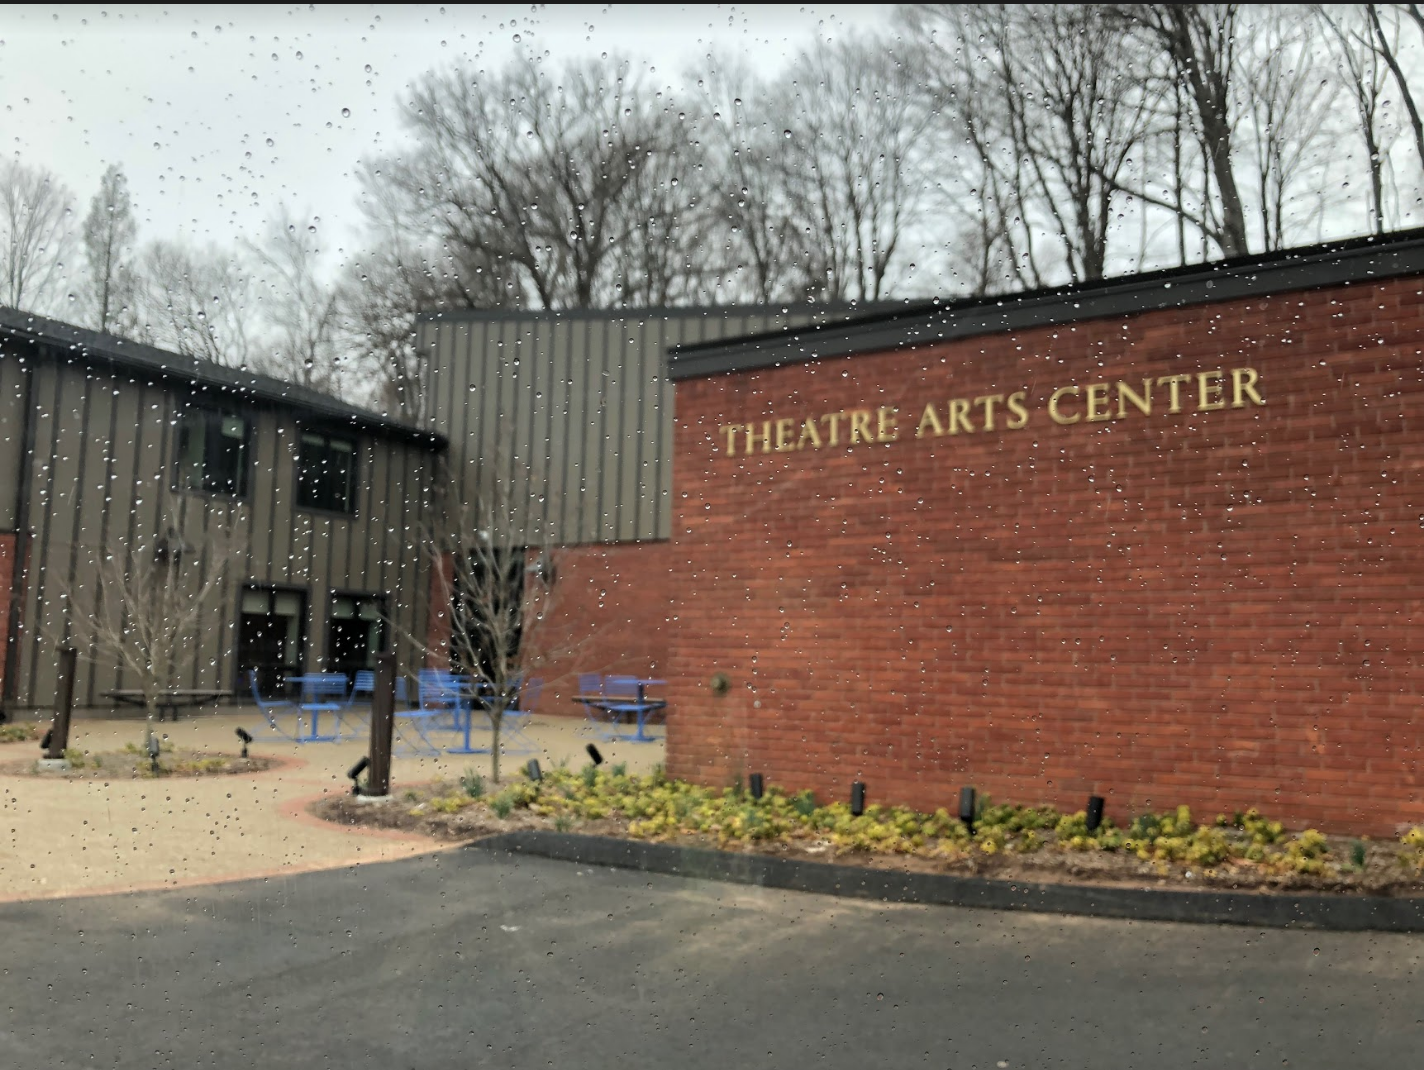 Drama department's rehearsal space on Sherman Ave